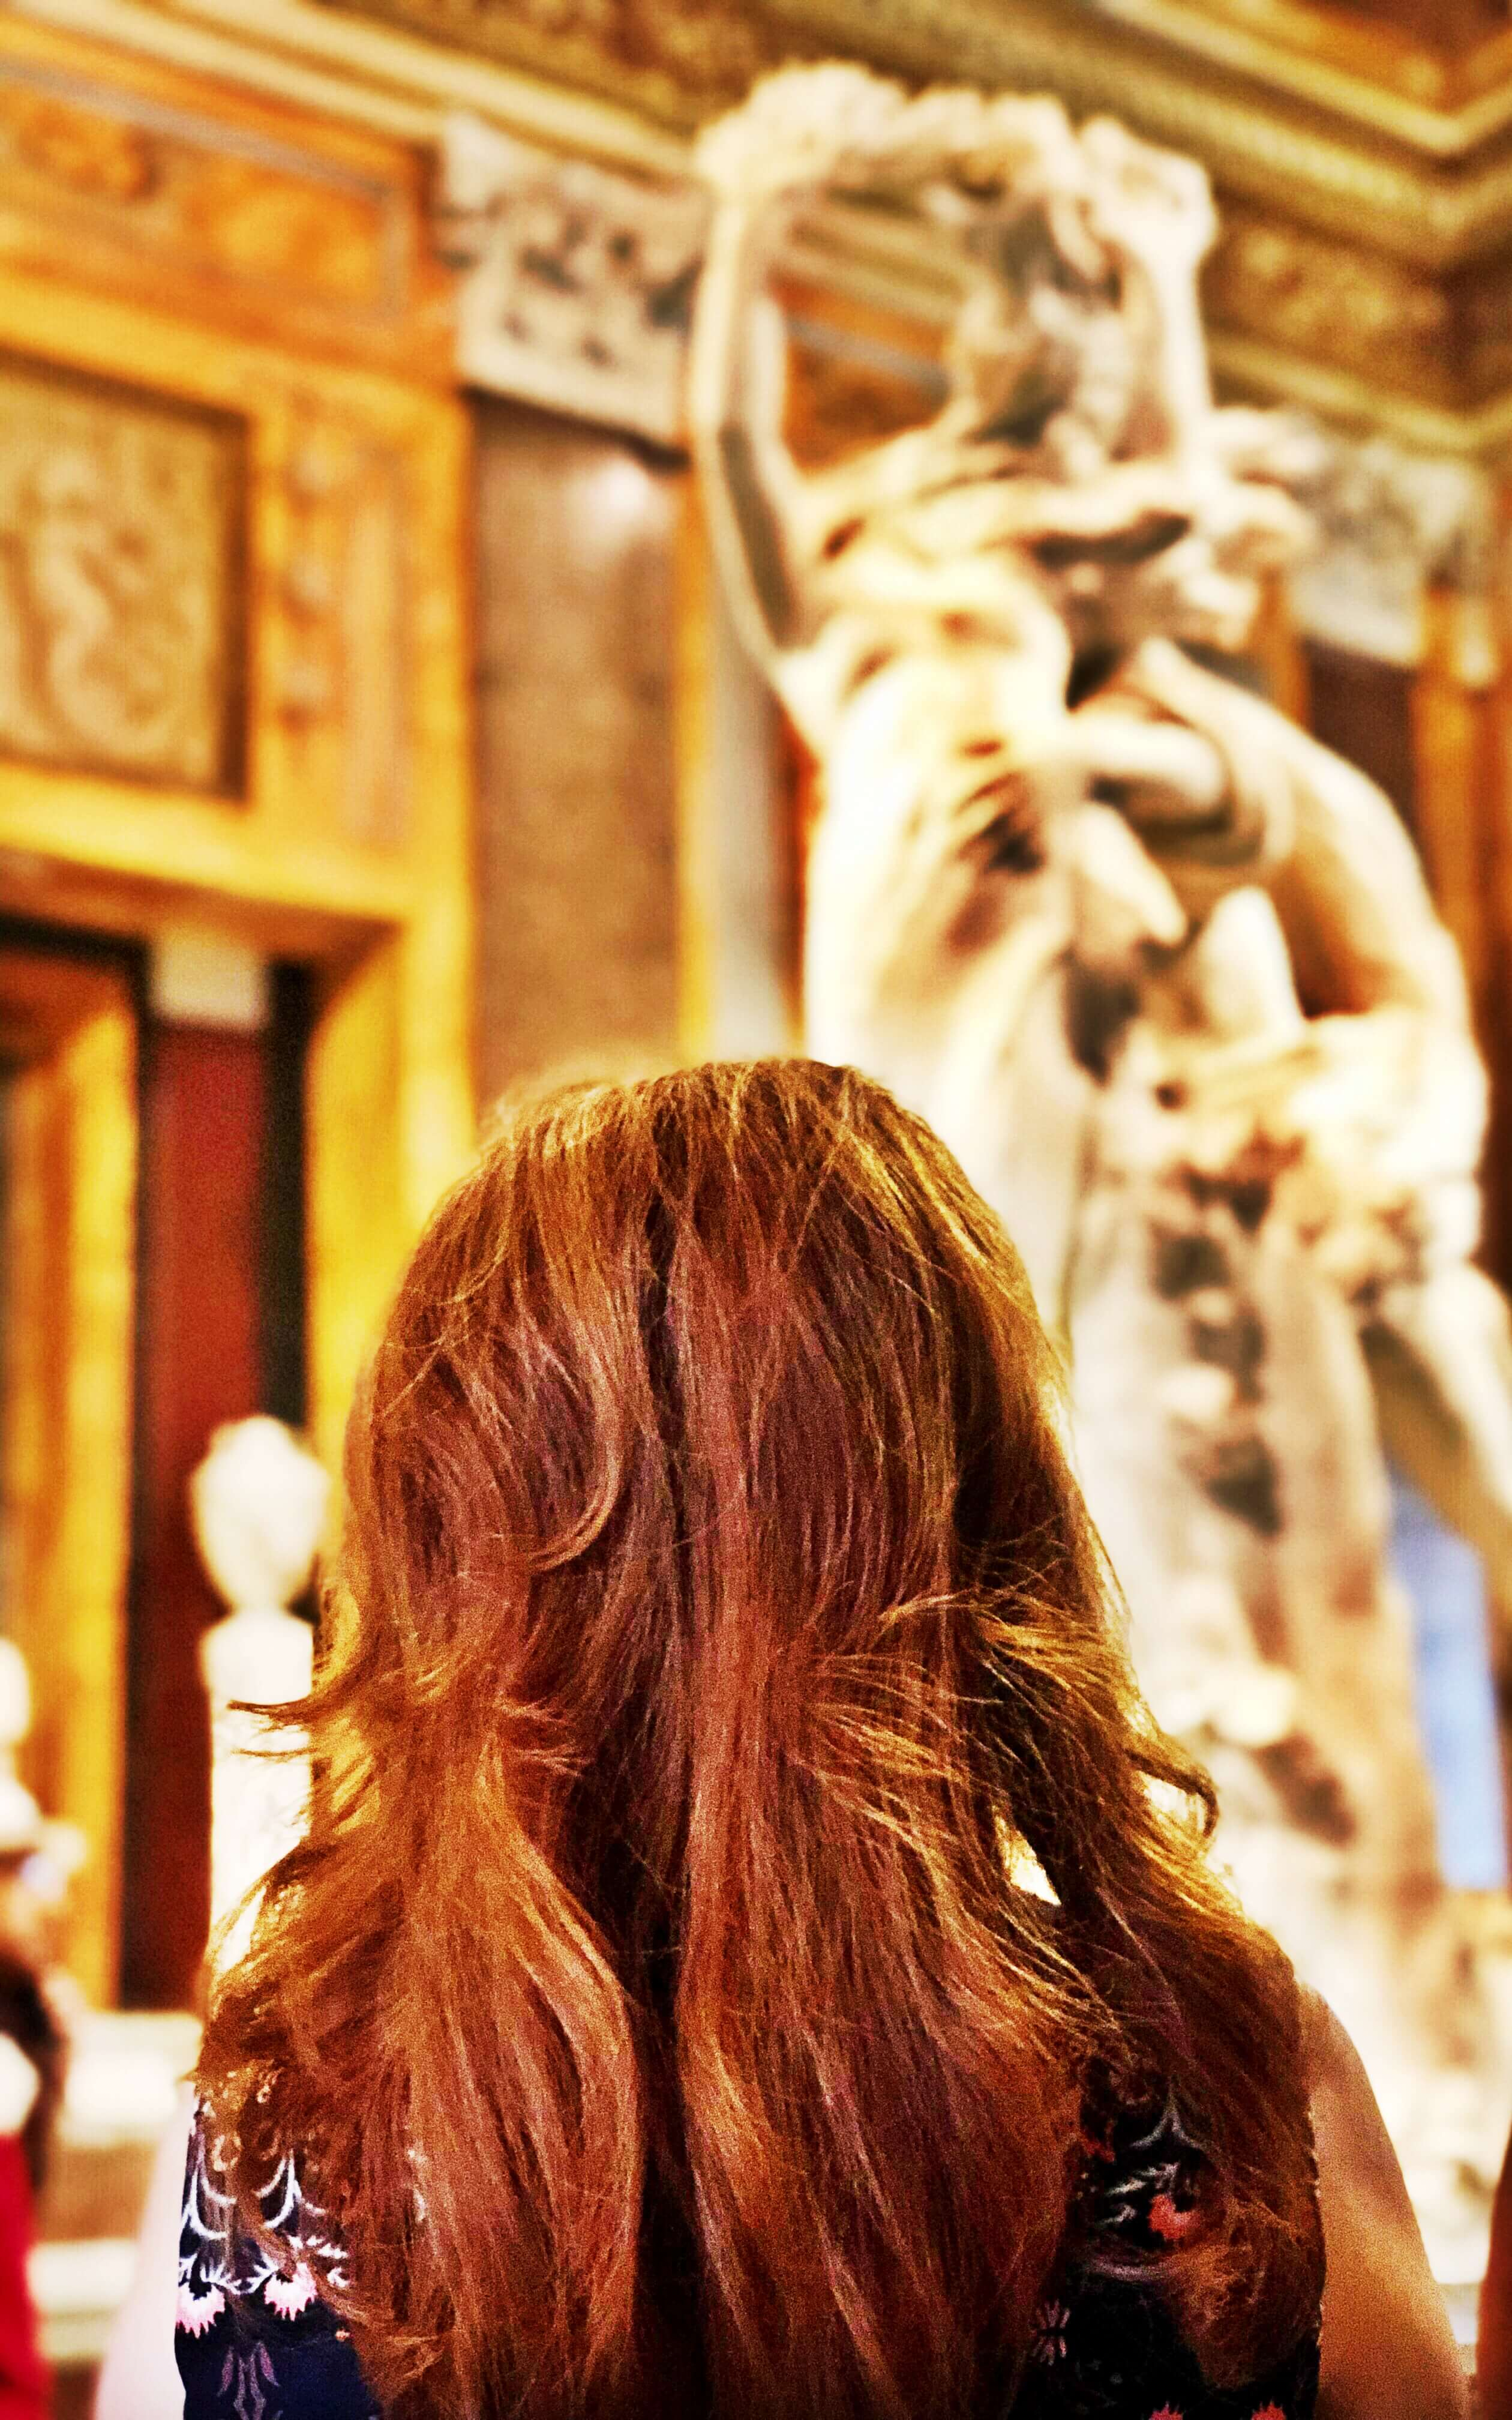 Creating Curious Cowgirl Blog Posts Galleria Borghese Edited